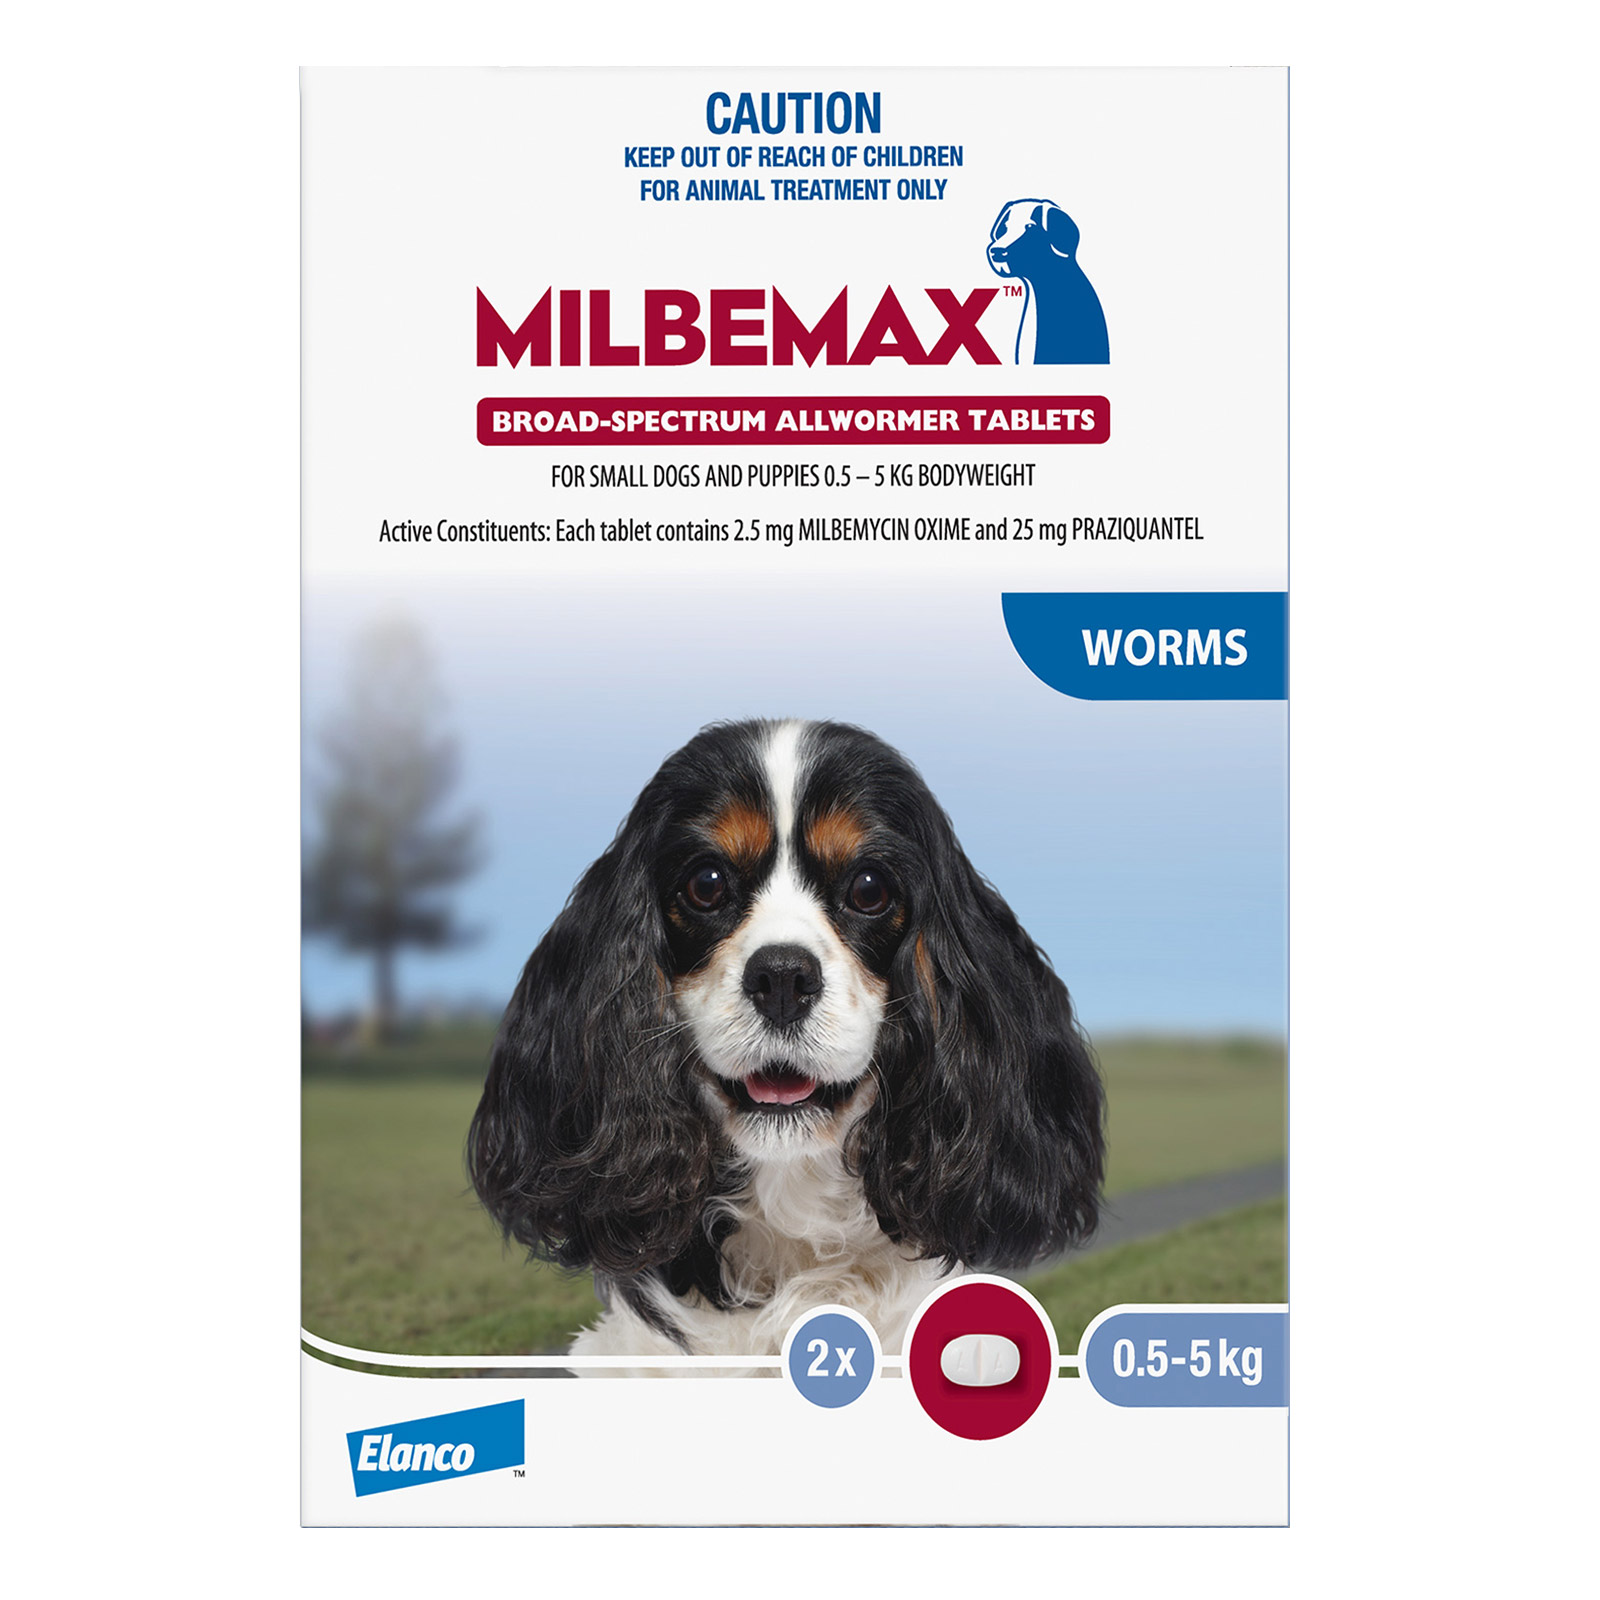 Milbemax Allwormer Tablets For Small Dogs 0.5 To 5 Kg